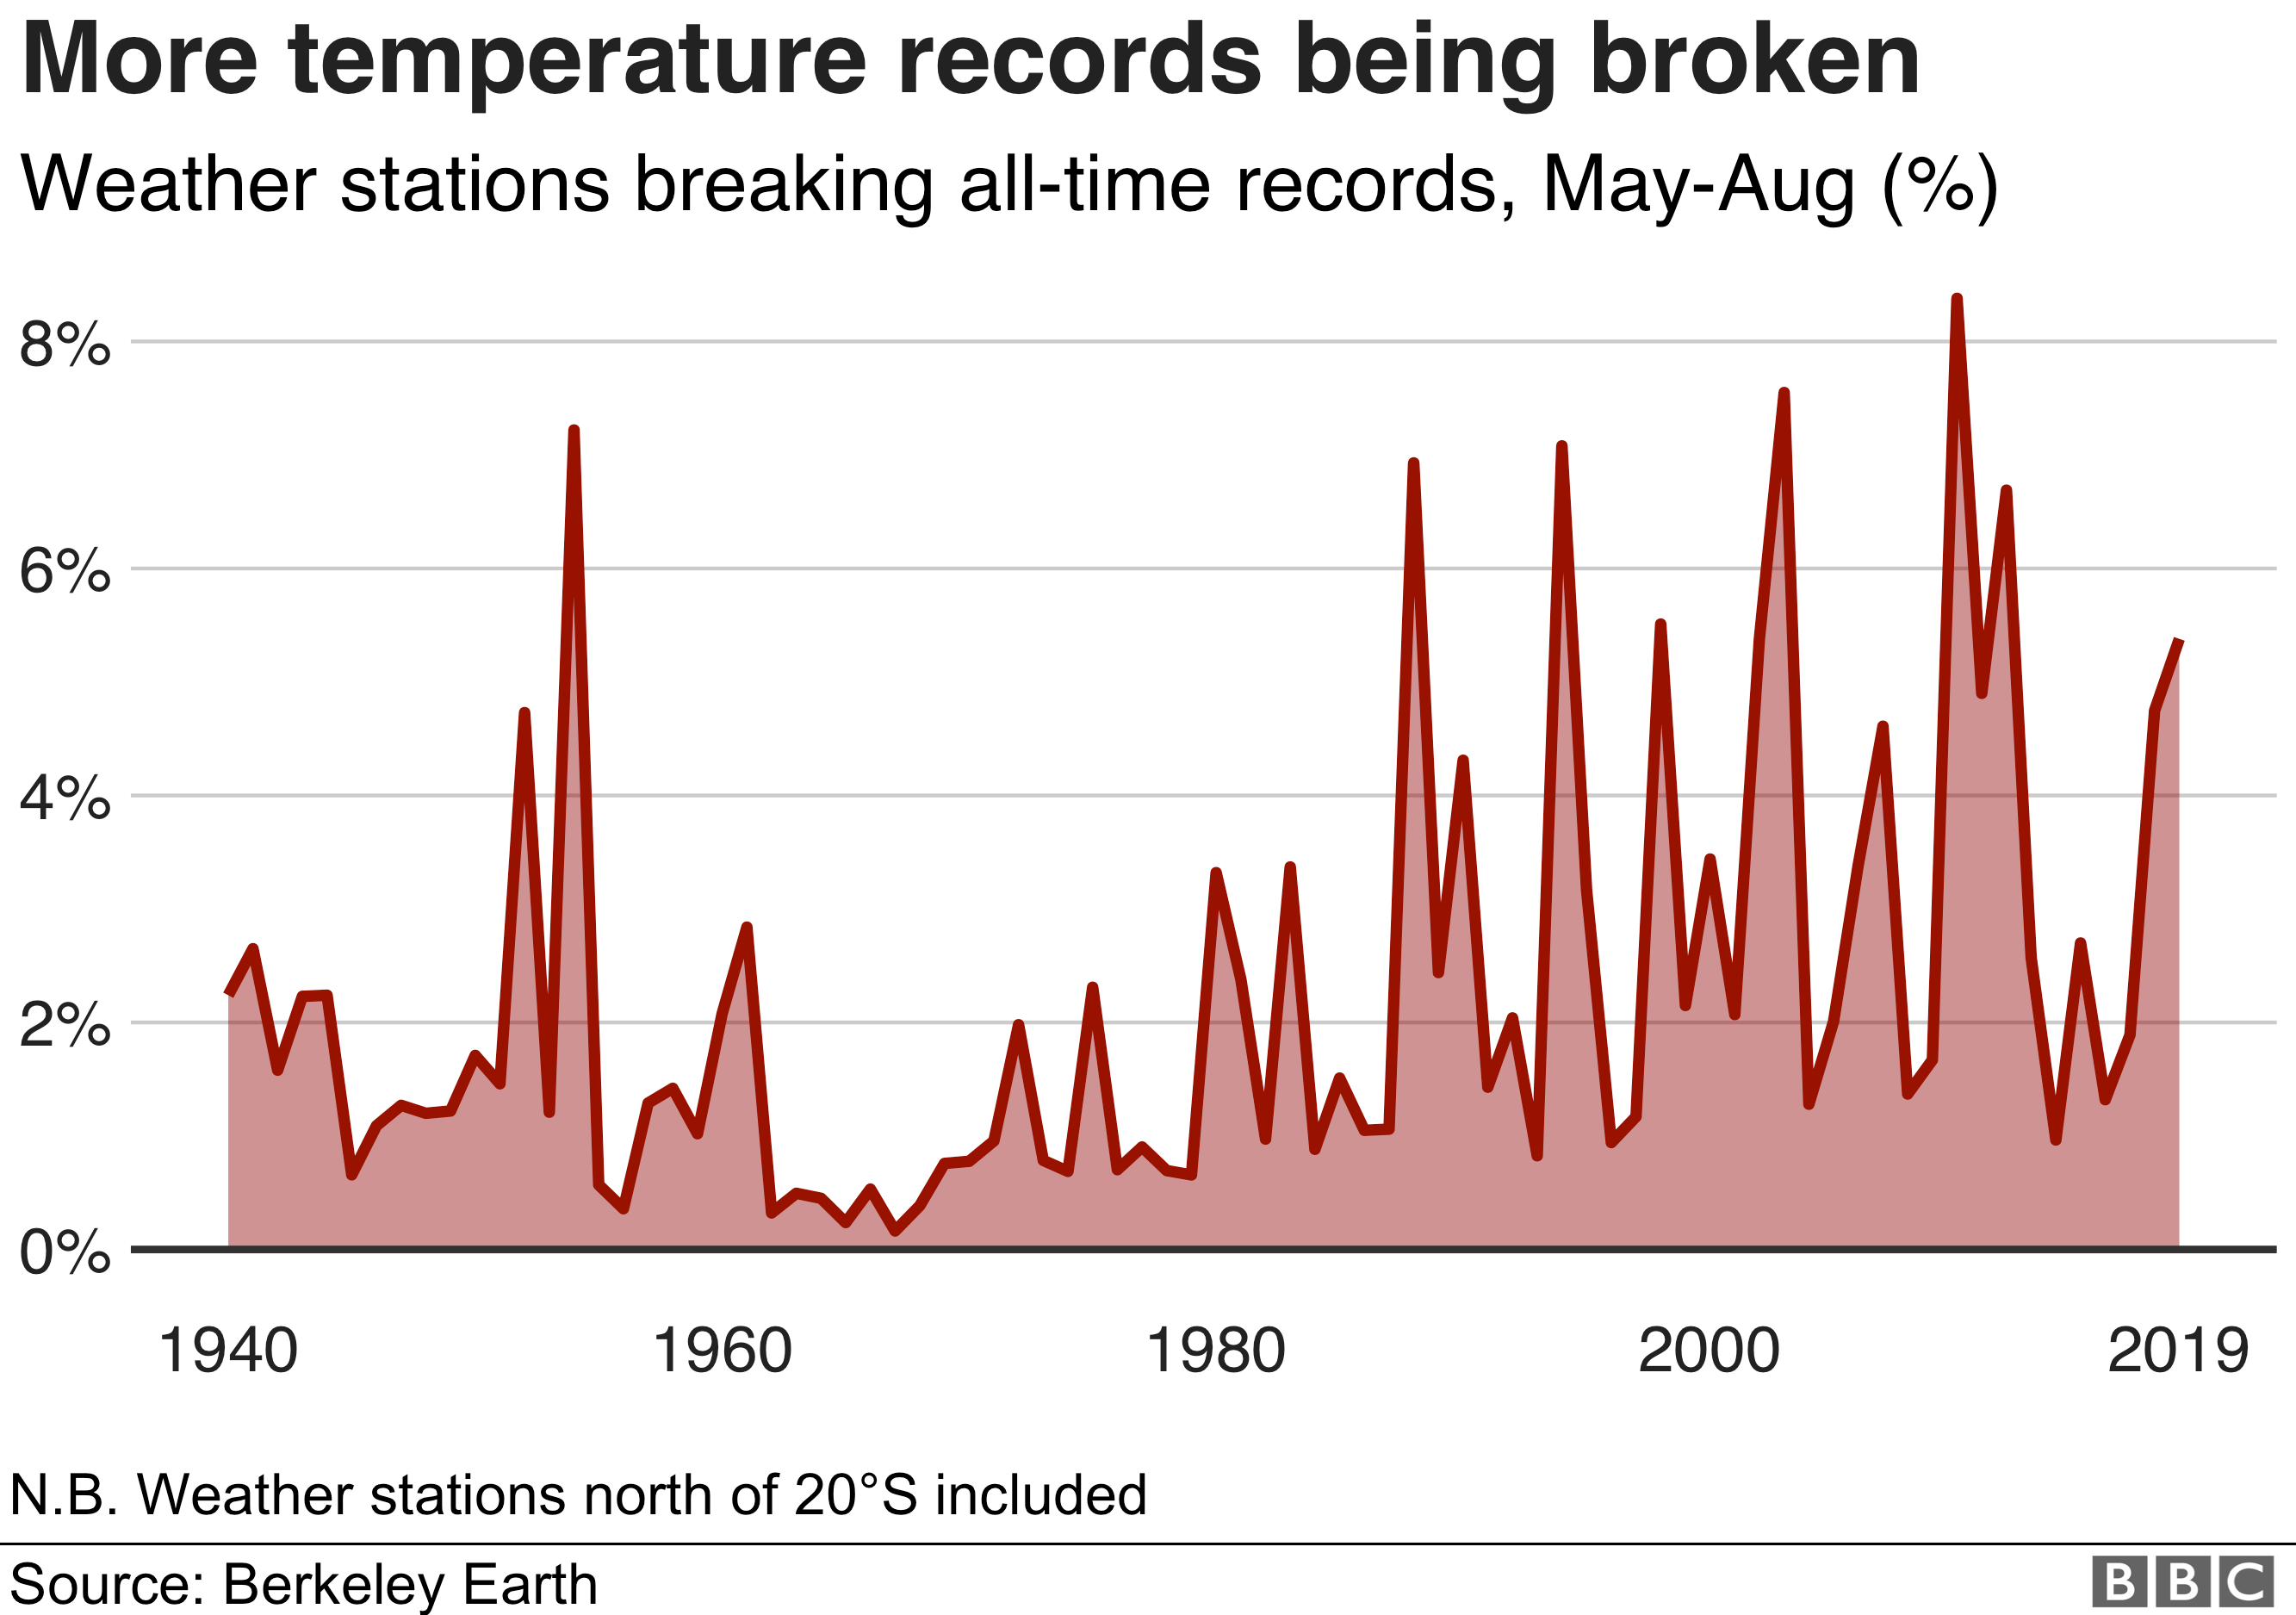 Chart showing that the number of all-time temperature records broken has been increasing